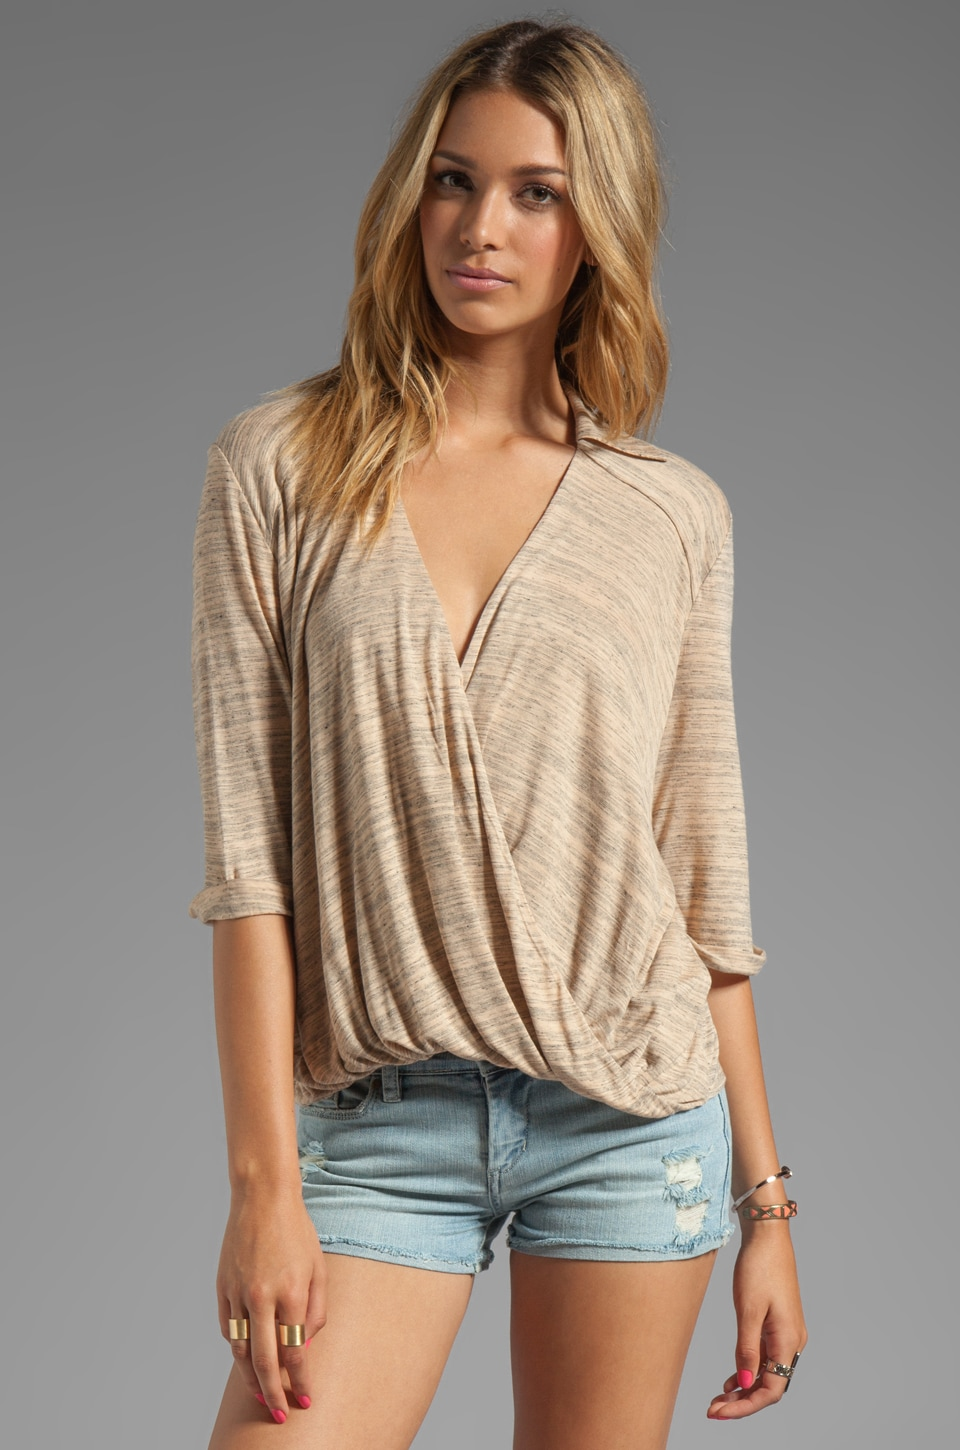 Blue Life Draped Blouse in Desert